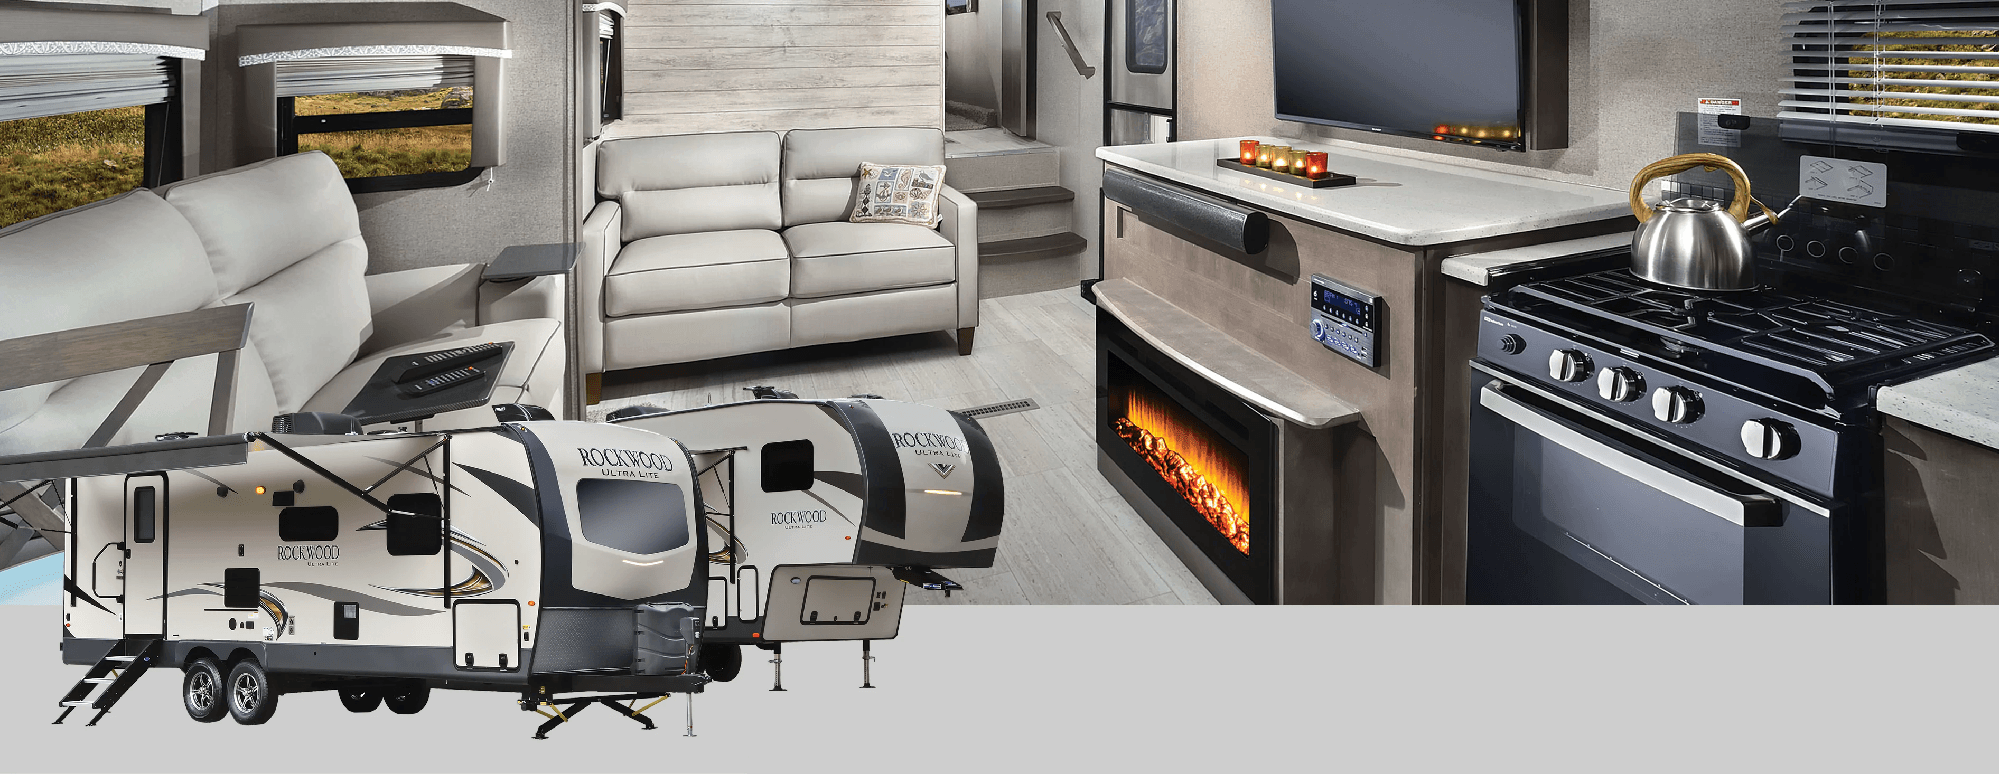 Rockwood Ultra Lite Travel Trailers In Alberta Parkview